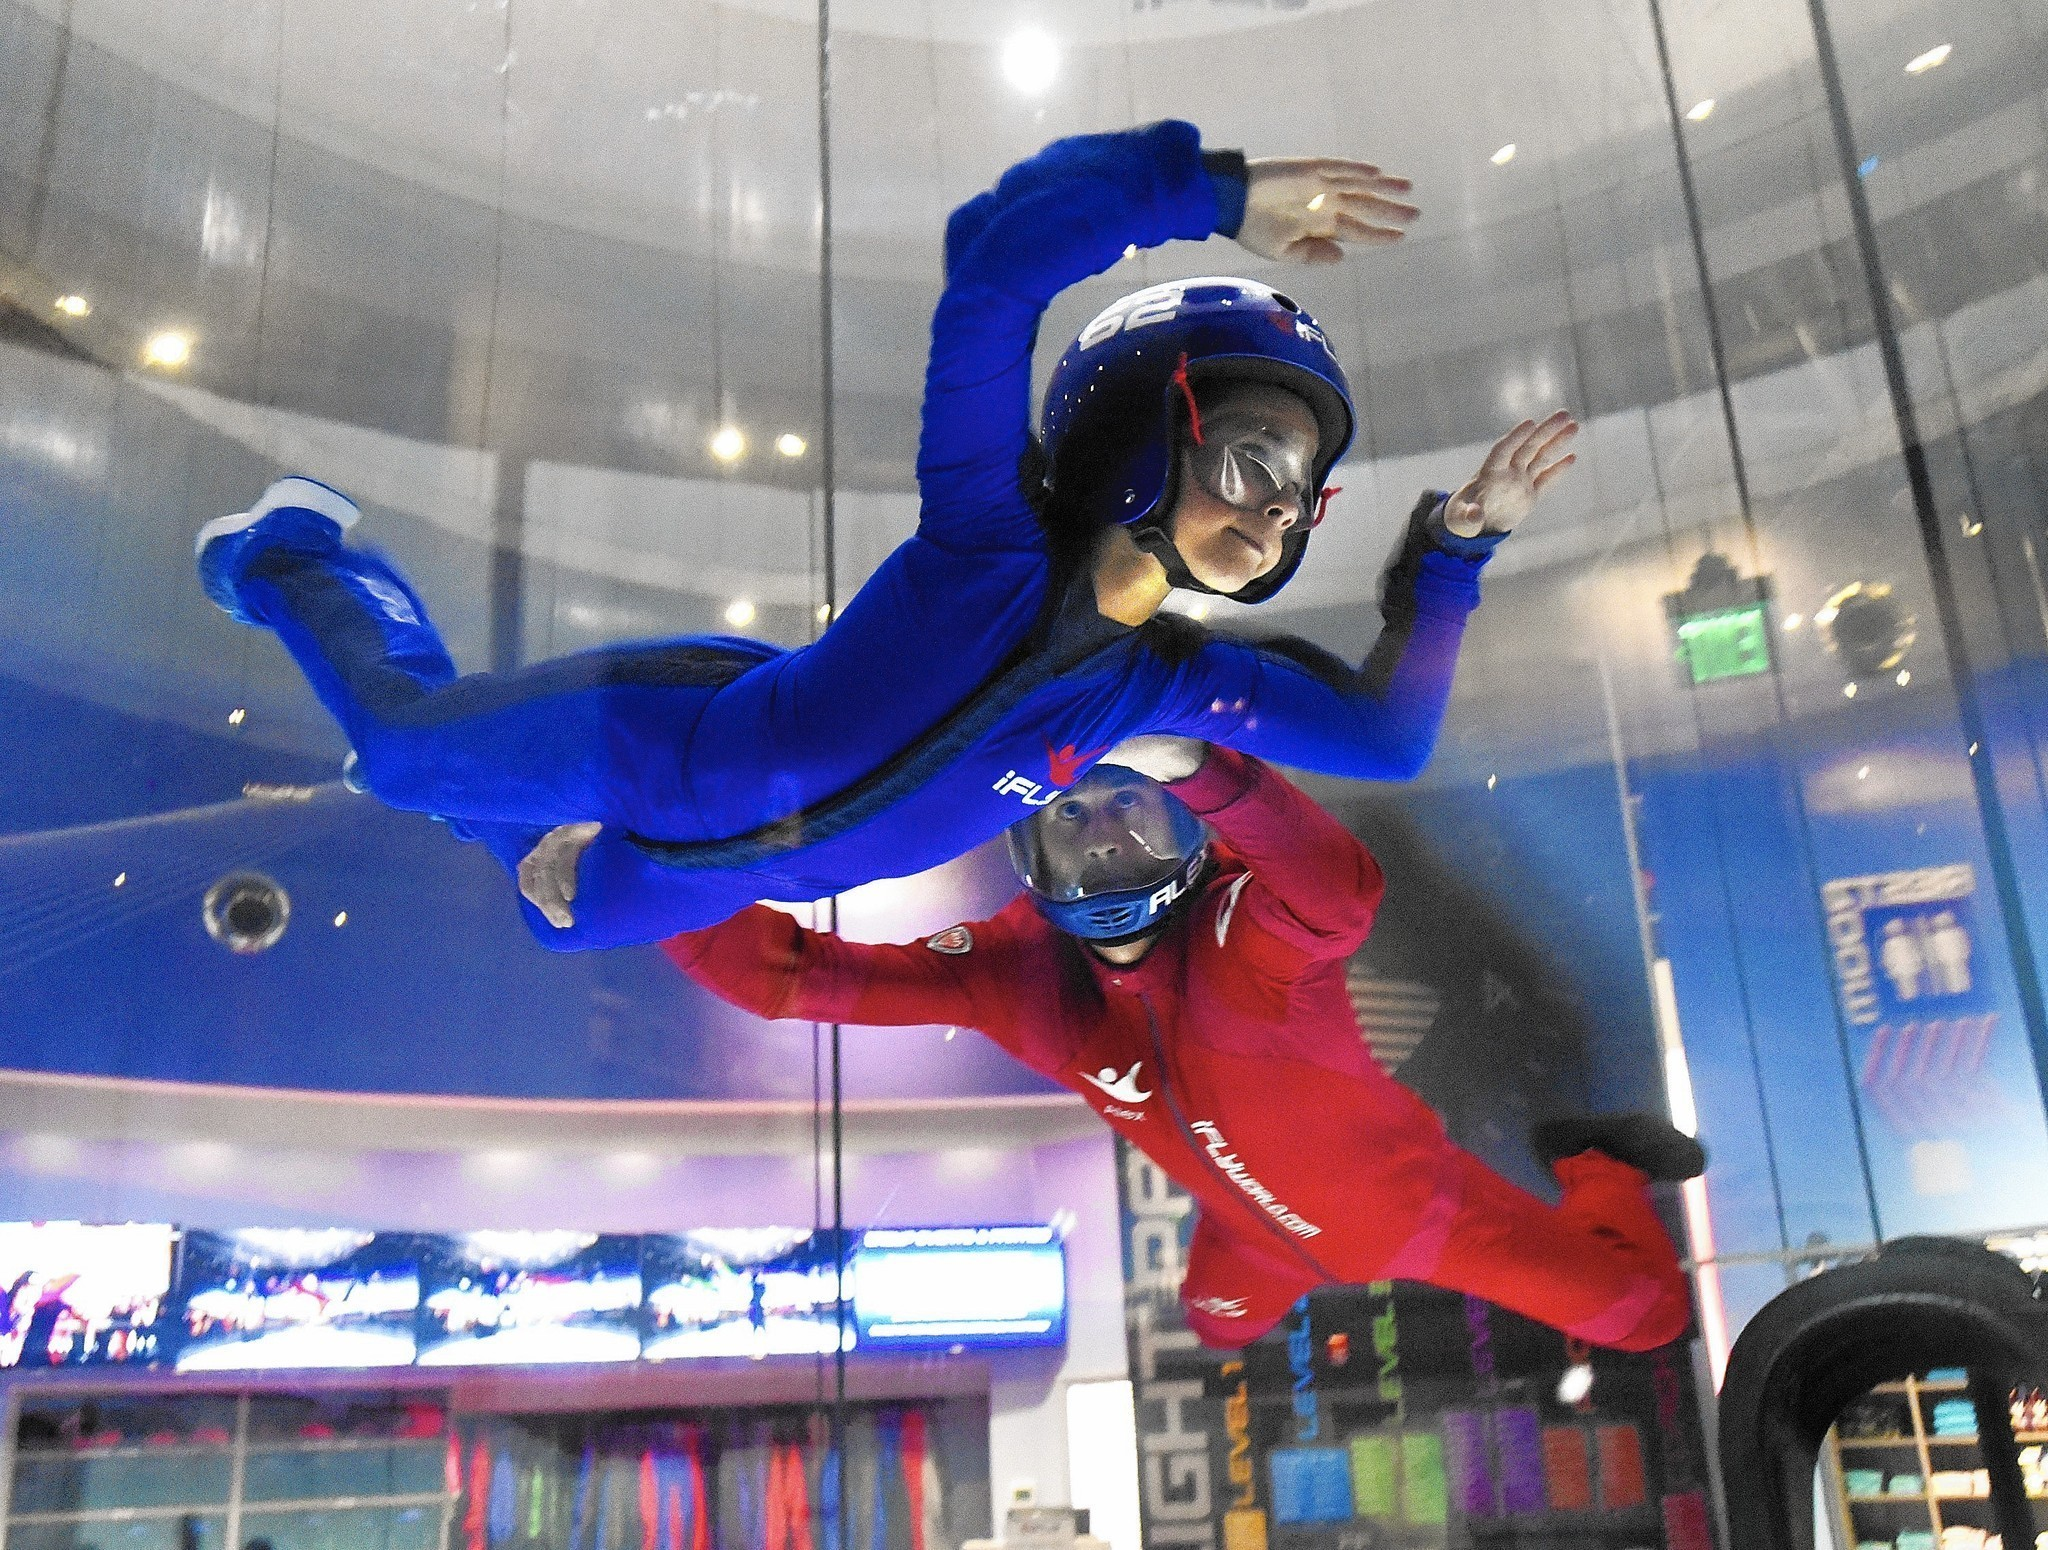 Area Indoor Skydiving Facility Lifts Off With Recent